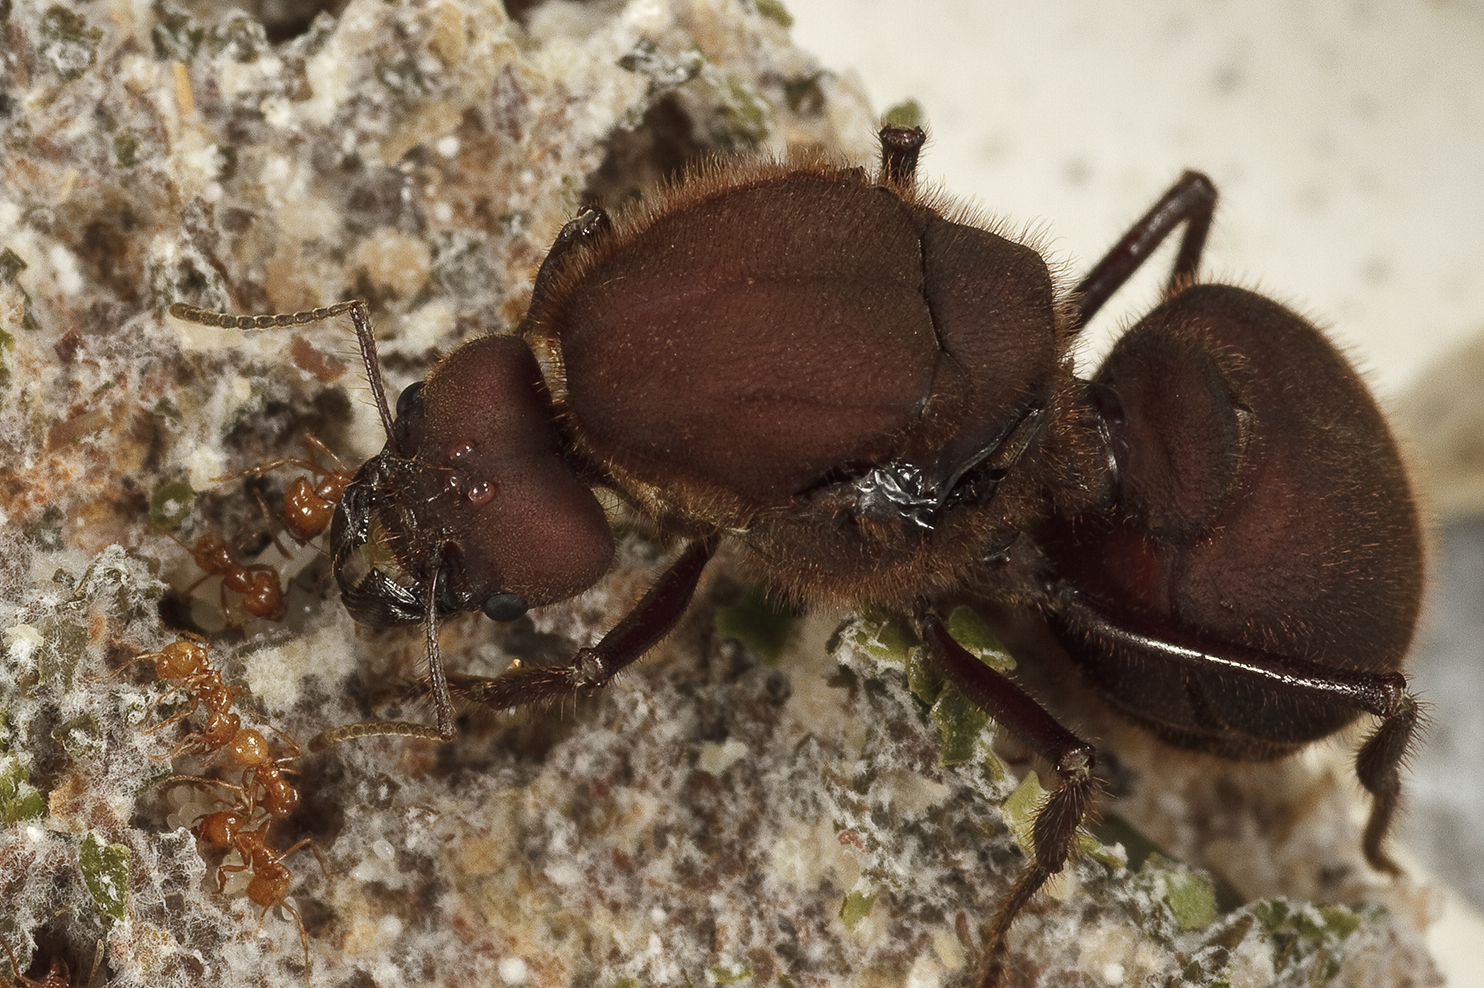 Queen ant with nurse ants